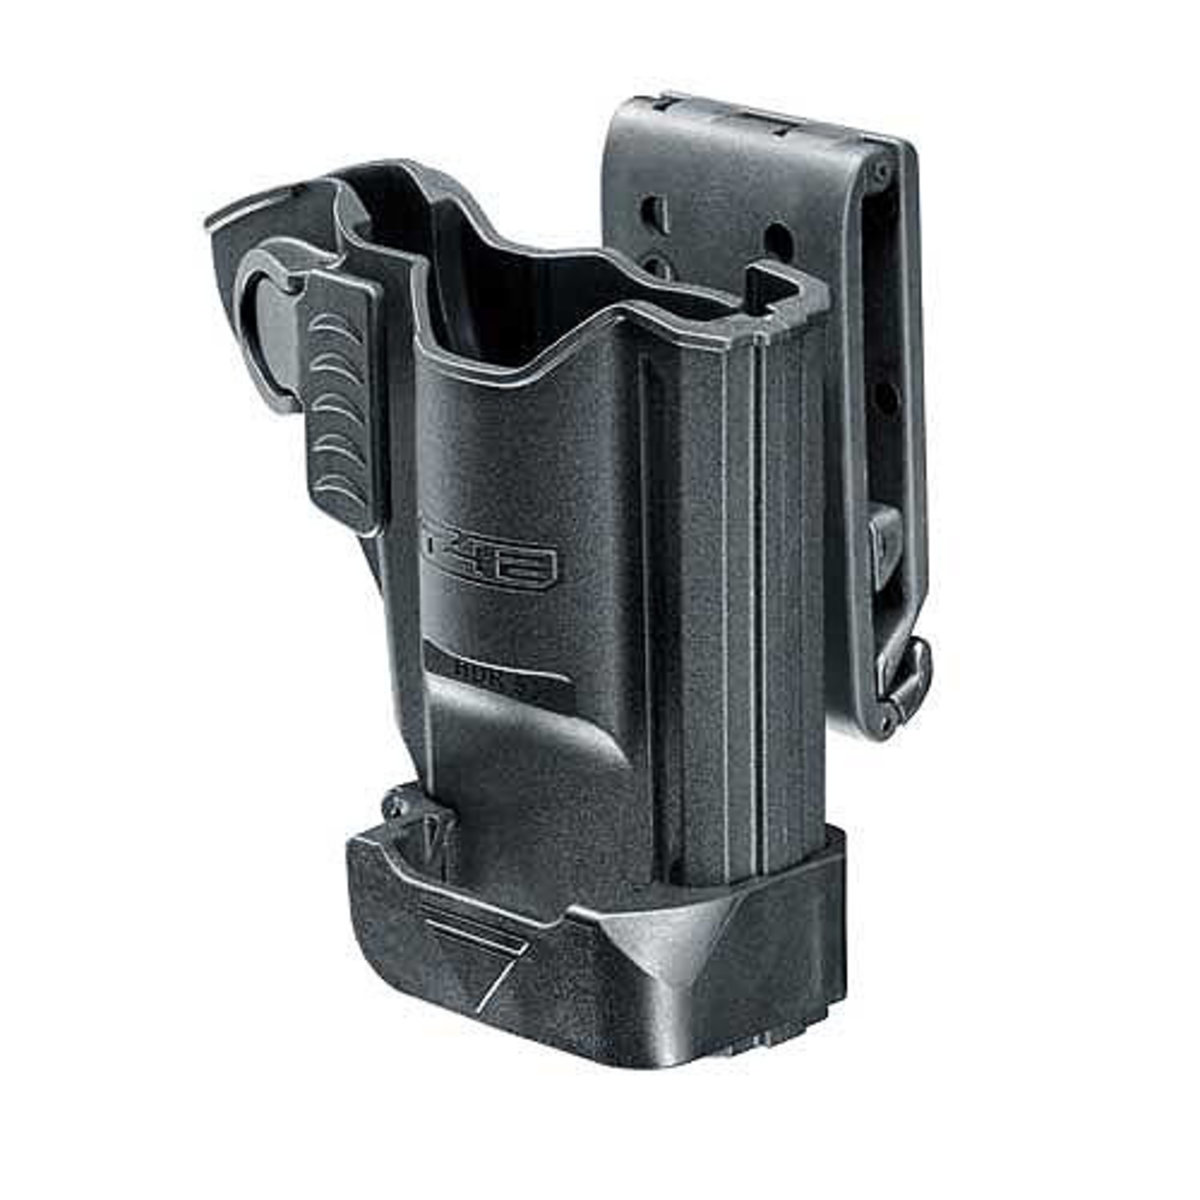 View larger image of Umarex T4E TR50 Holster